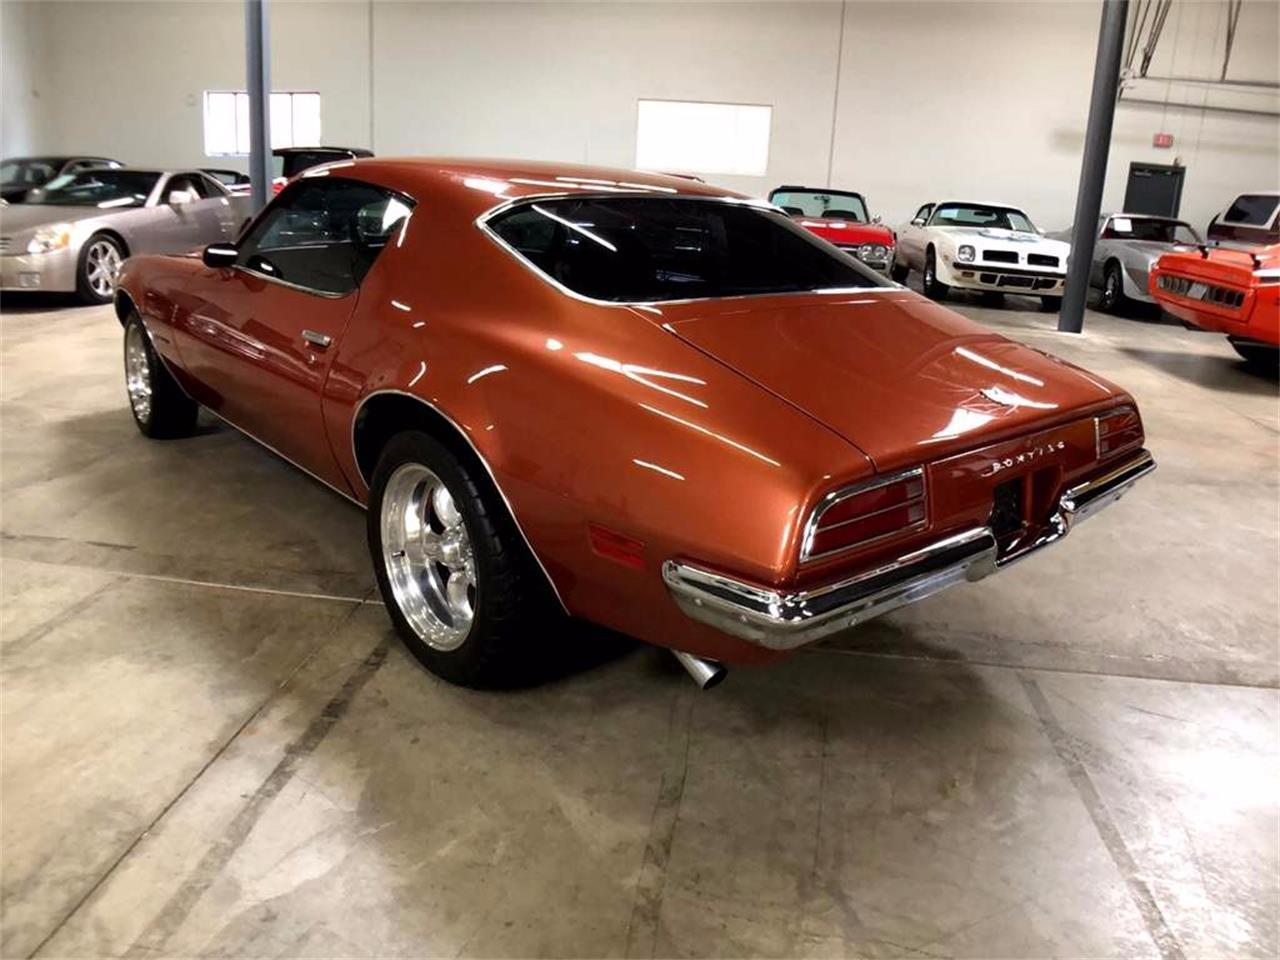 1972 Pontiac Firebird for sale in Gurnee, IL – photo 61